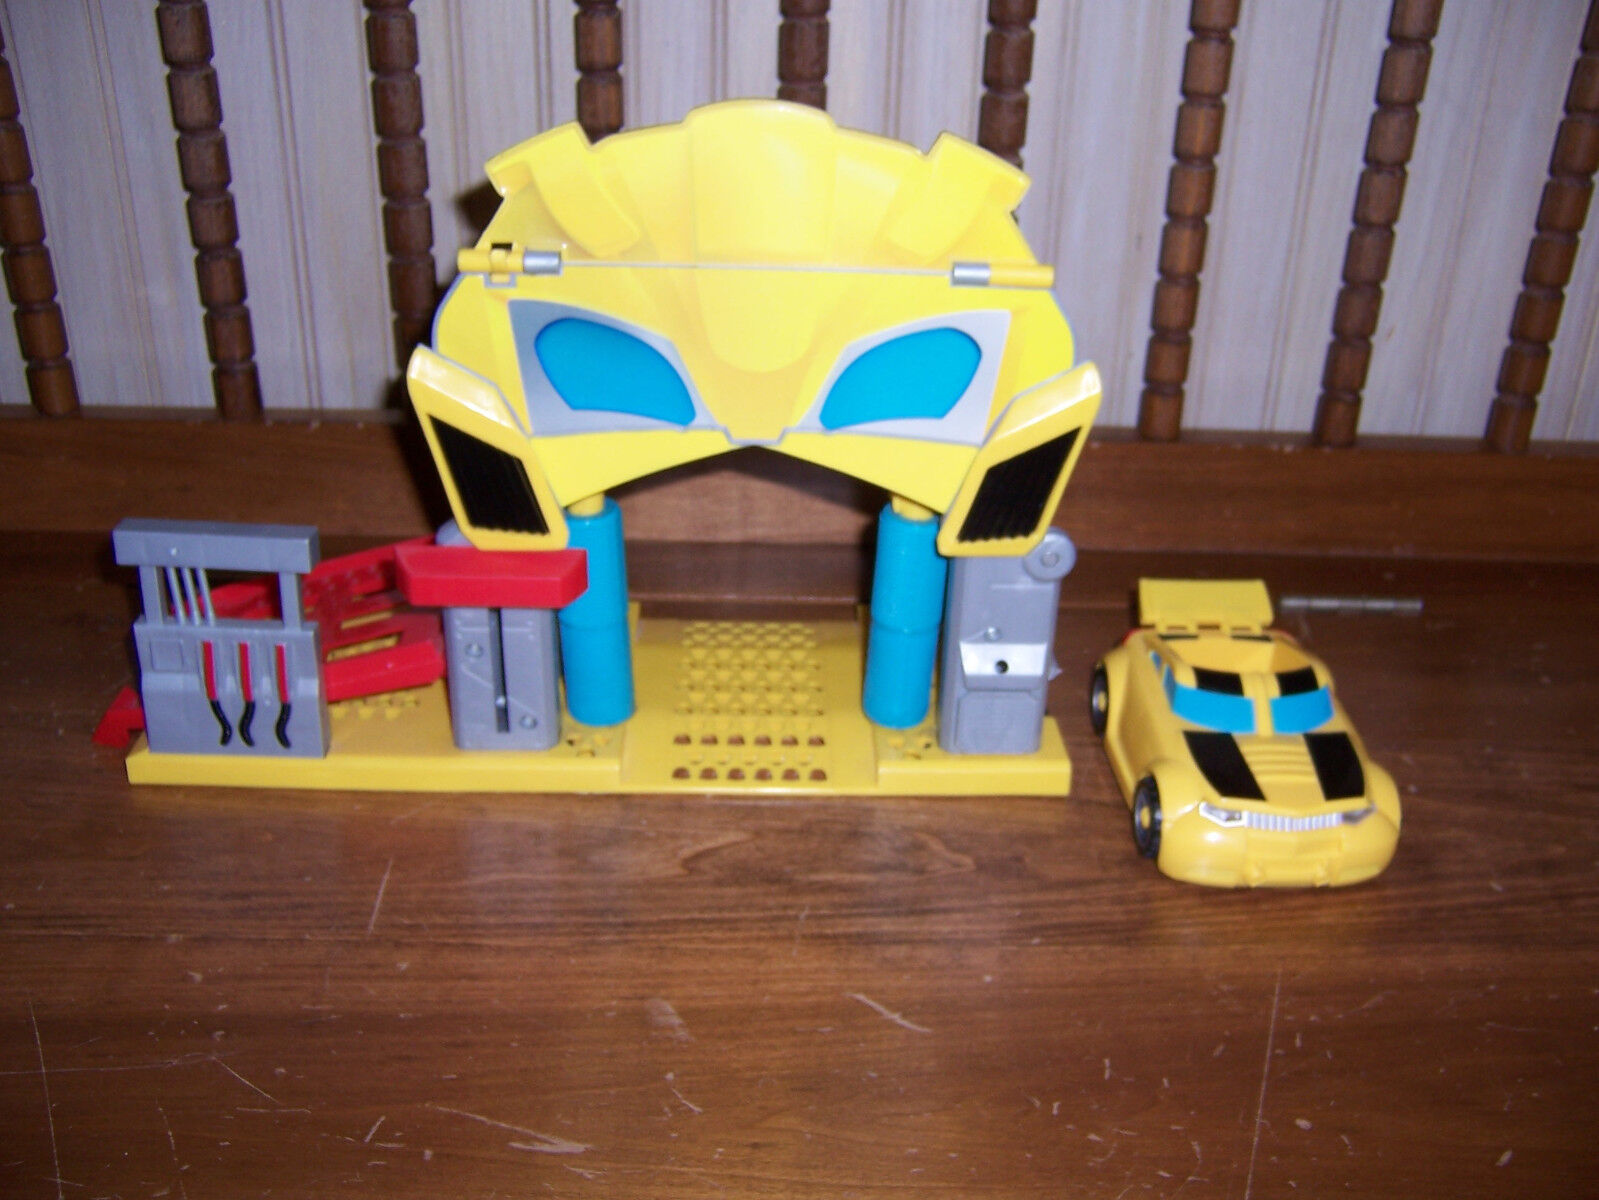 Hasbro Transformers Playskool Item Bumblebee's Garage Playset With Car K